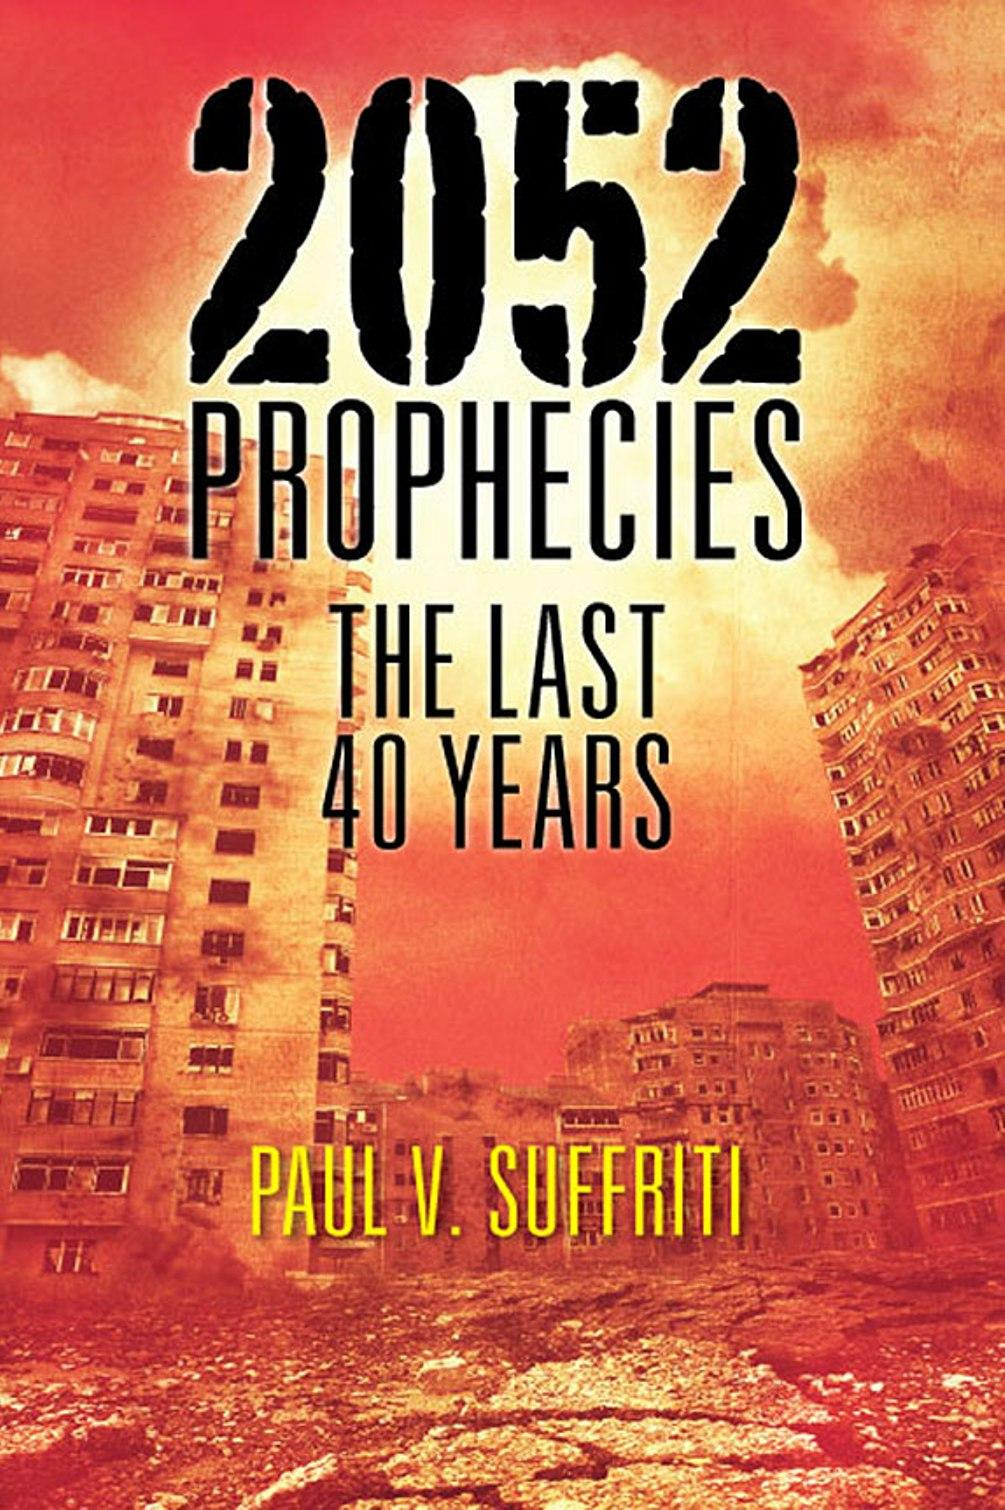 2052 Prophecies: The Last 40 Years EB9781622128211